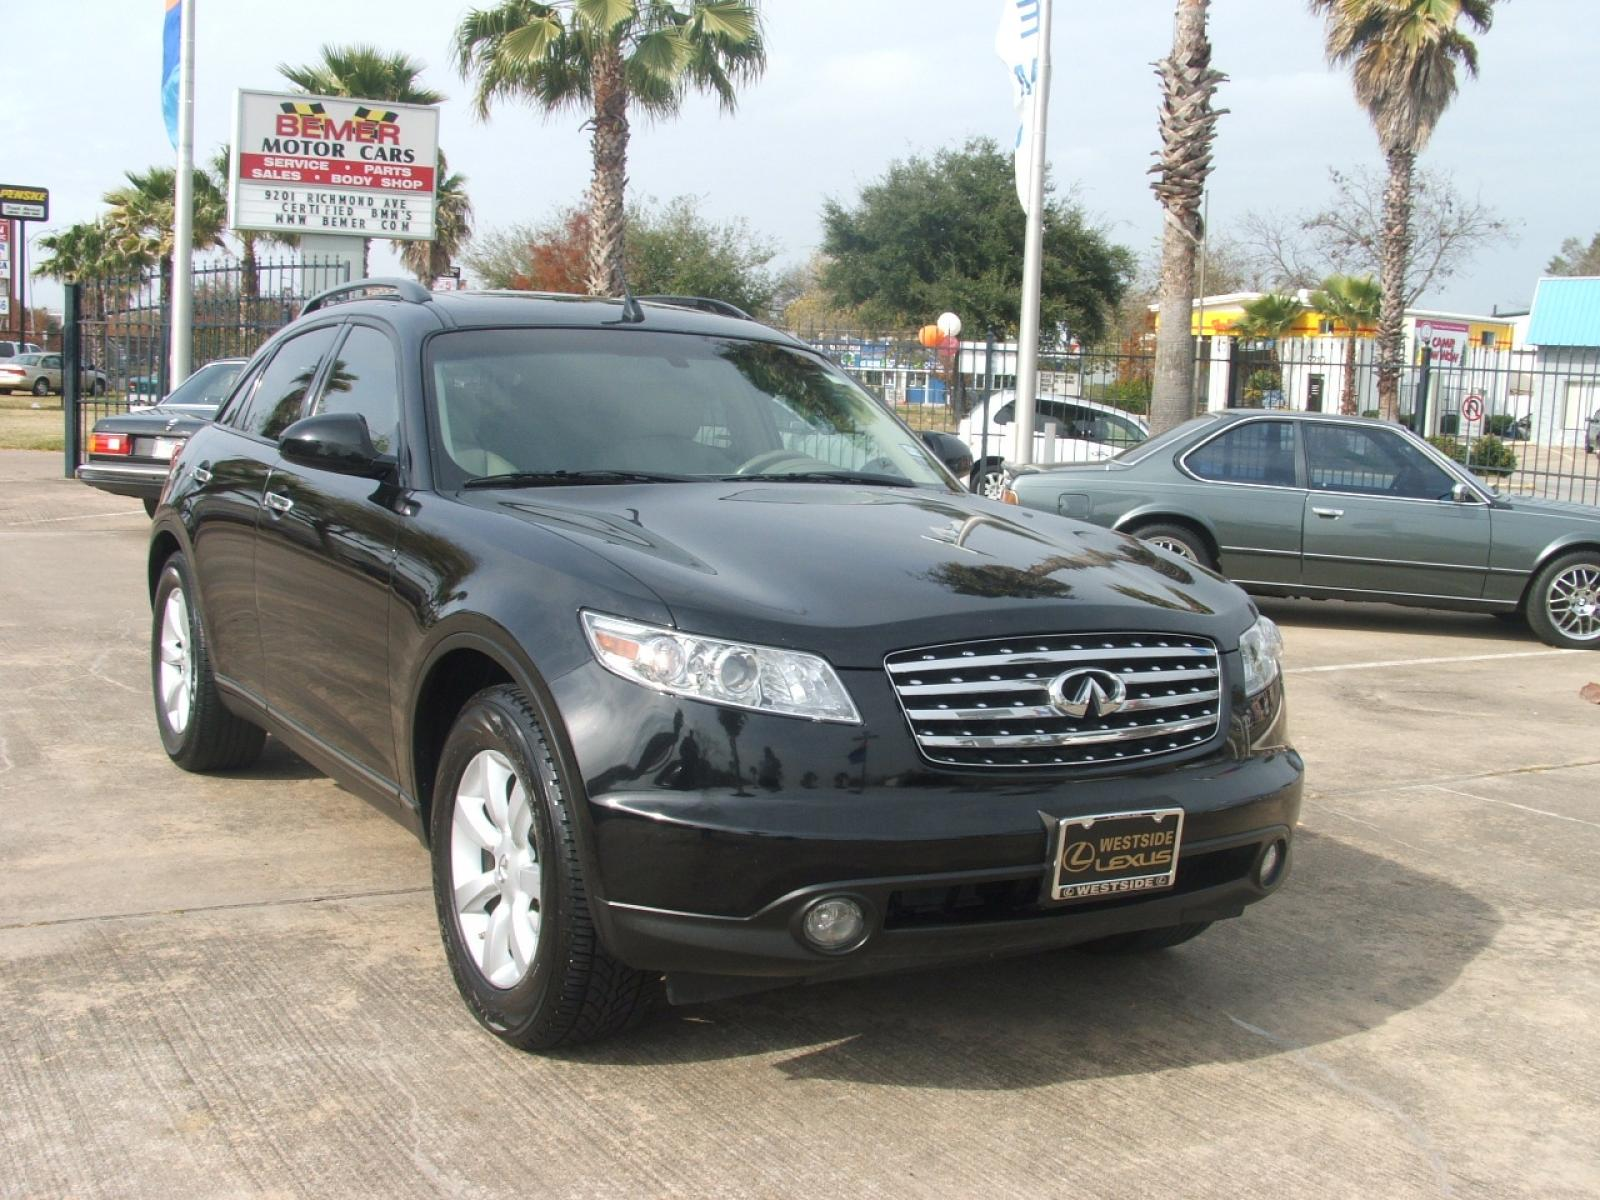 2005 infiniti fx35 information and photos zombiedrive 800 1024 1280 1600 origin 2005 infiniti fx35 vanachro Image collections